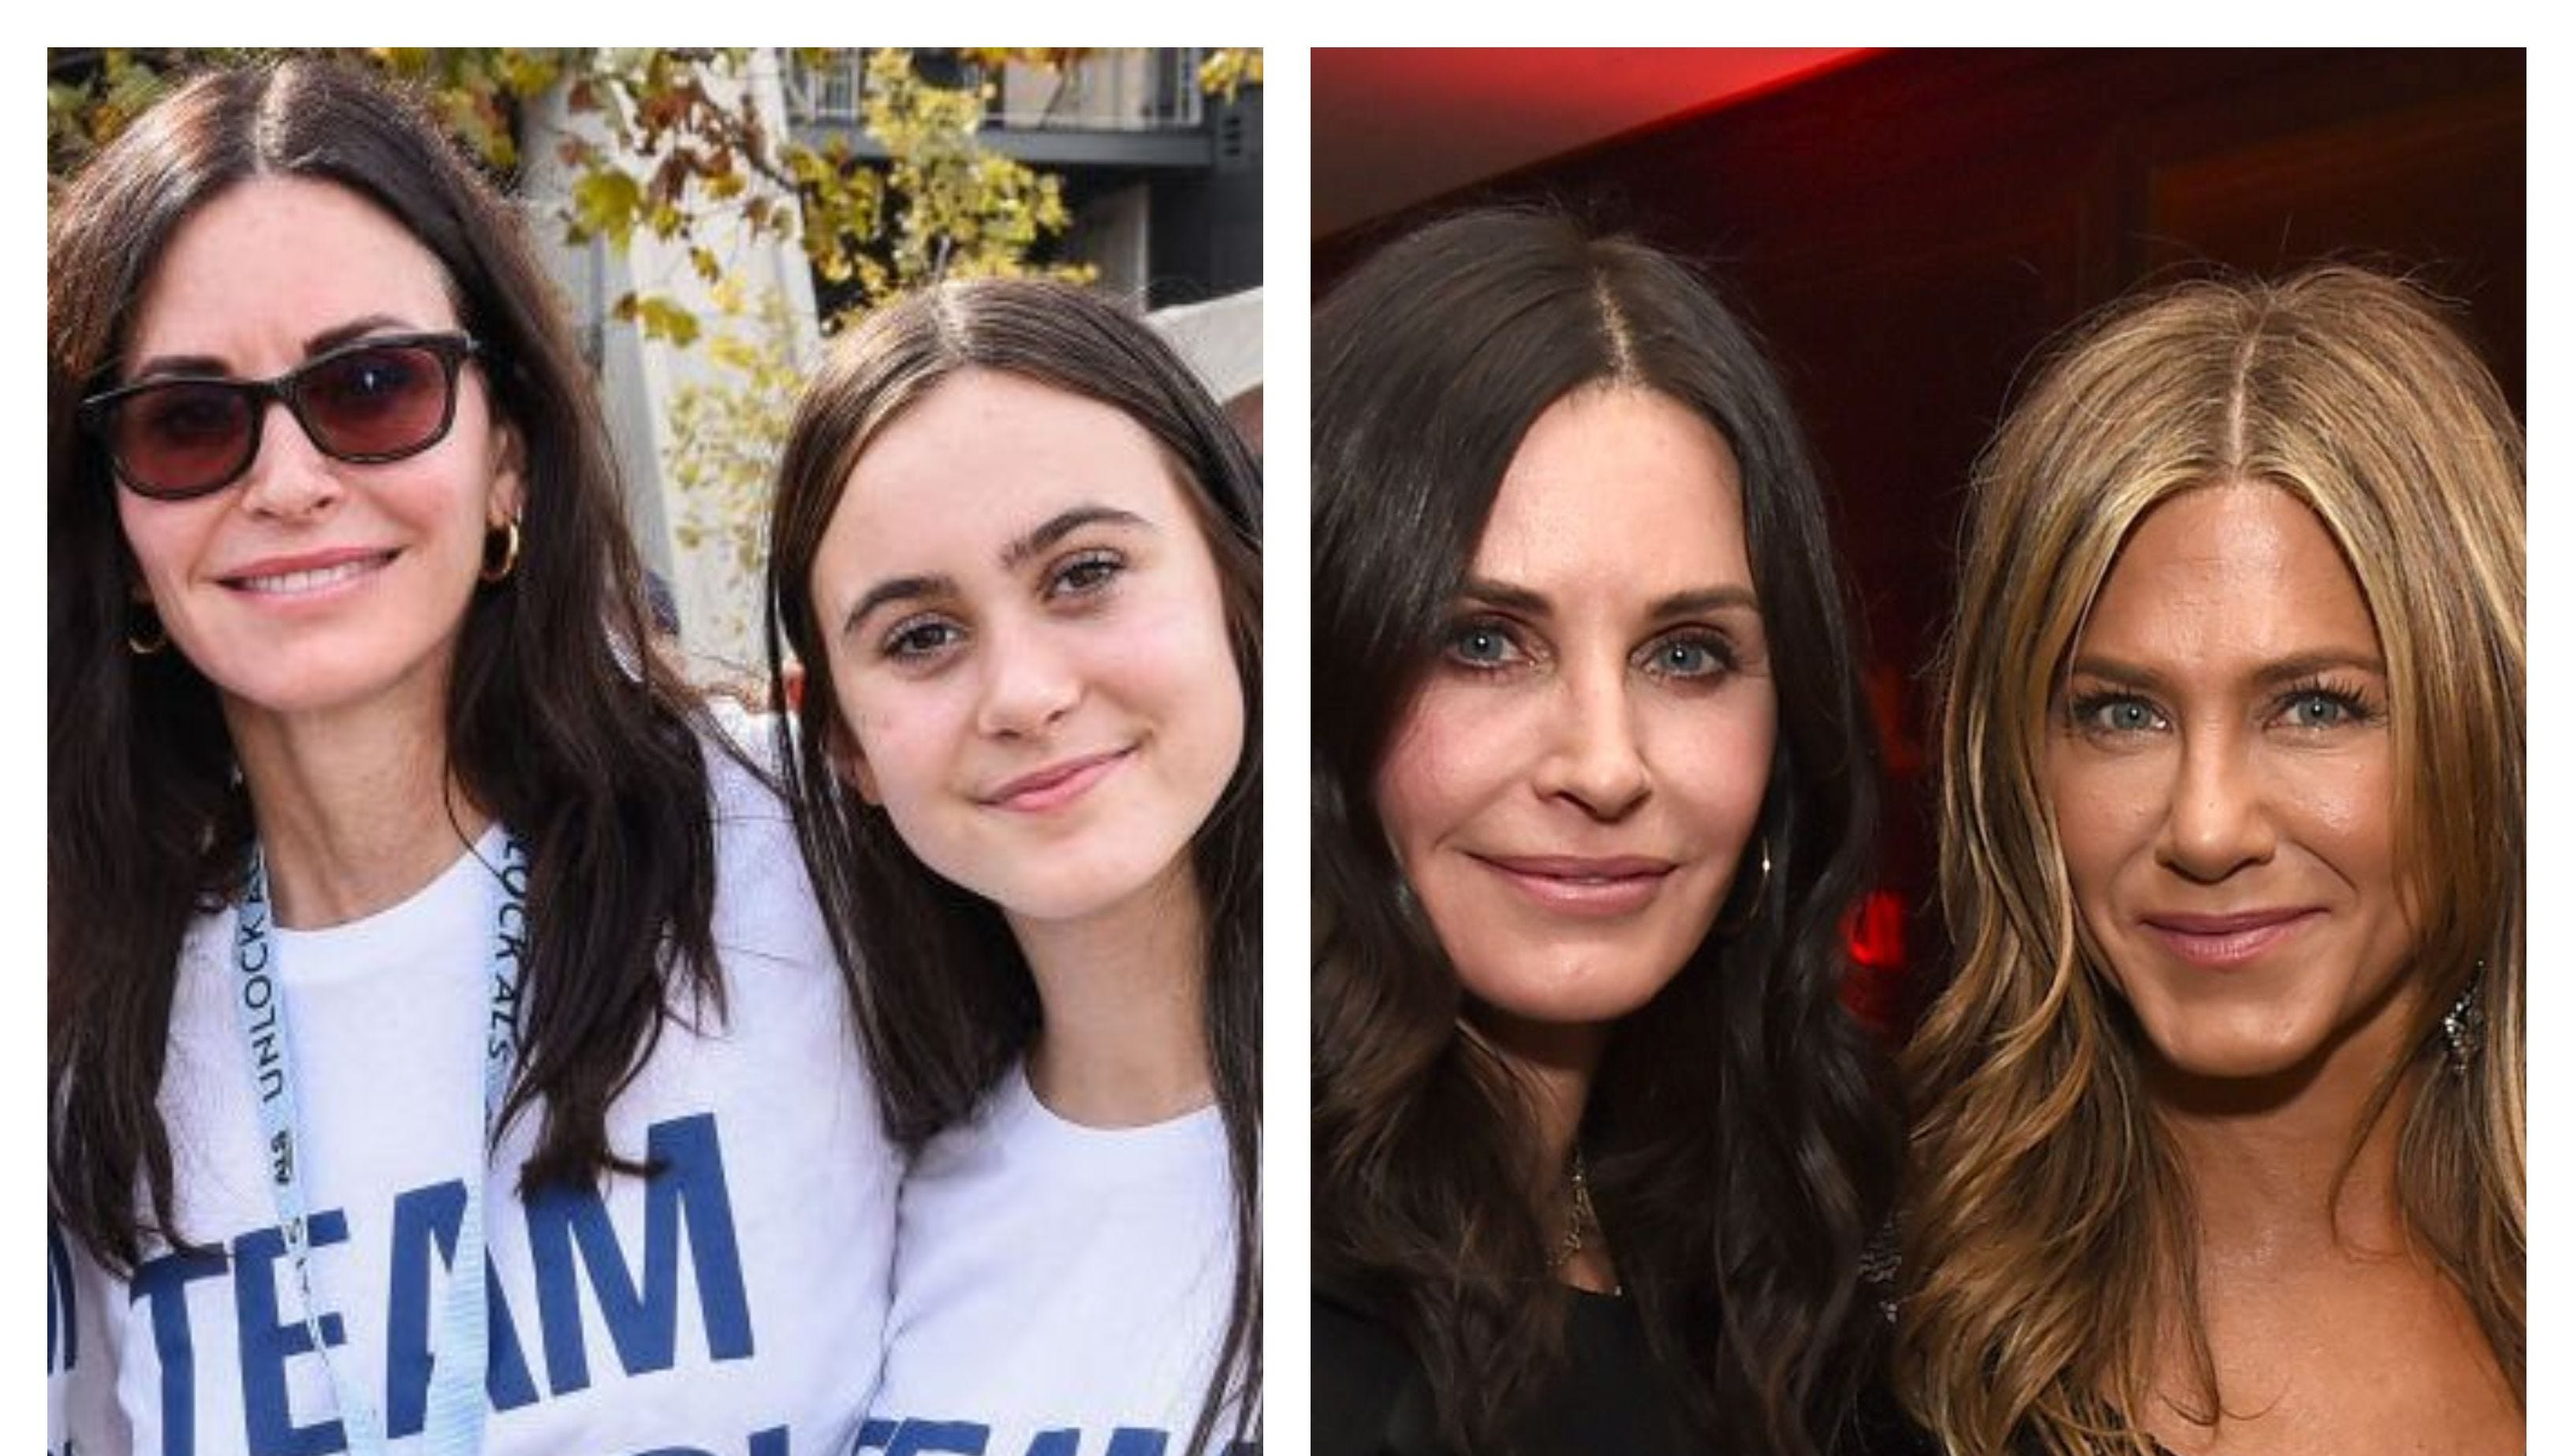 Courteney Cox texted daughter 'I love you' during scare on jet to Jennifer Aniston's birthday